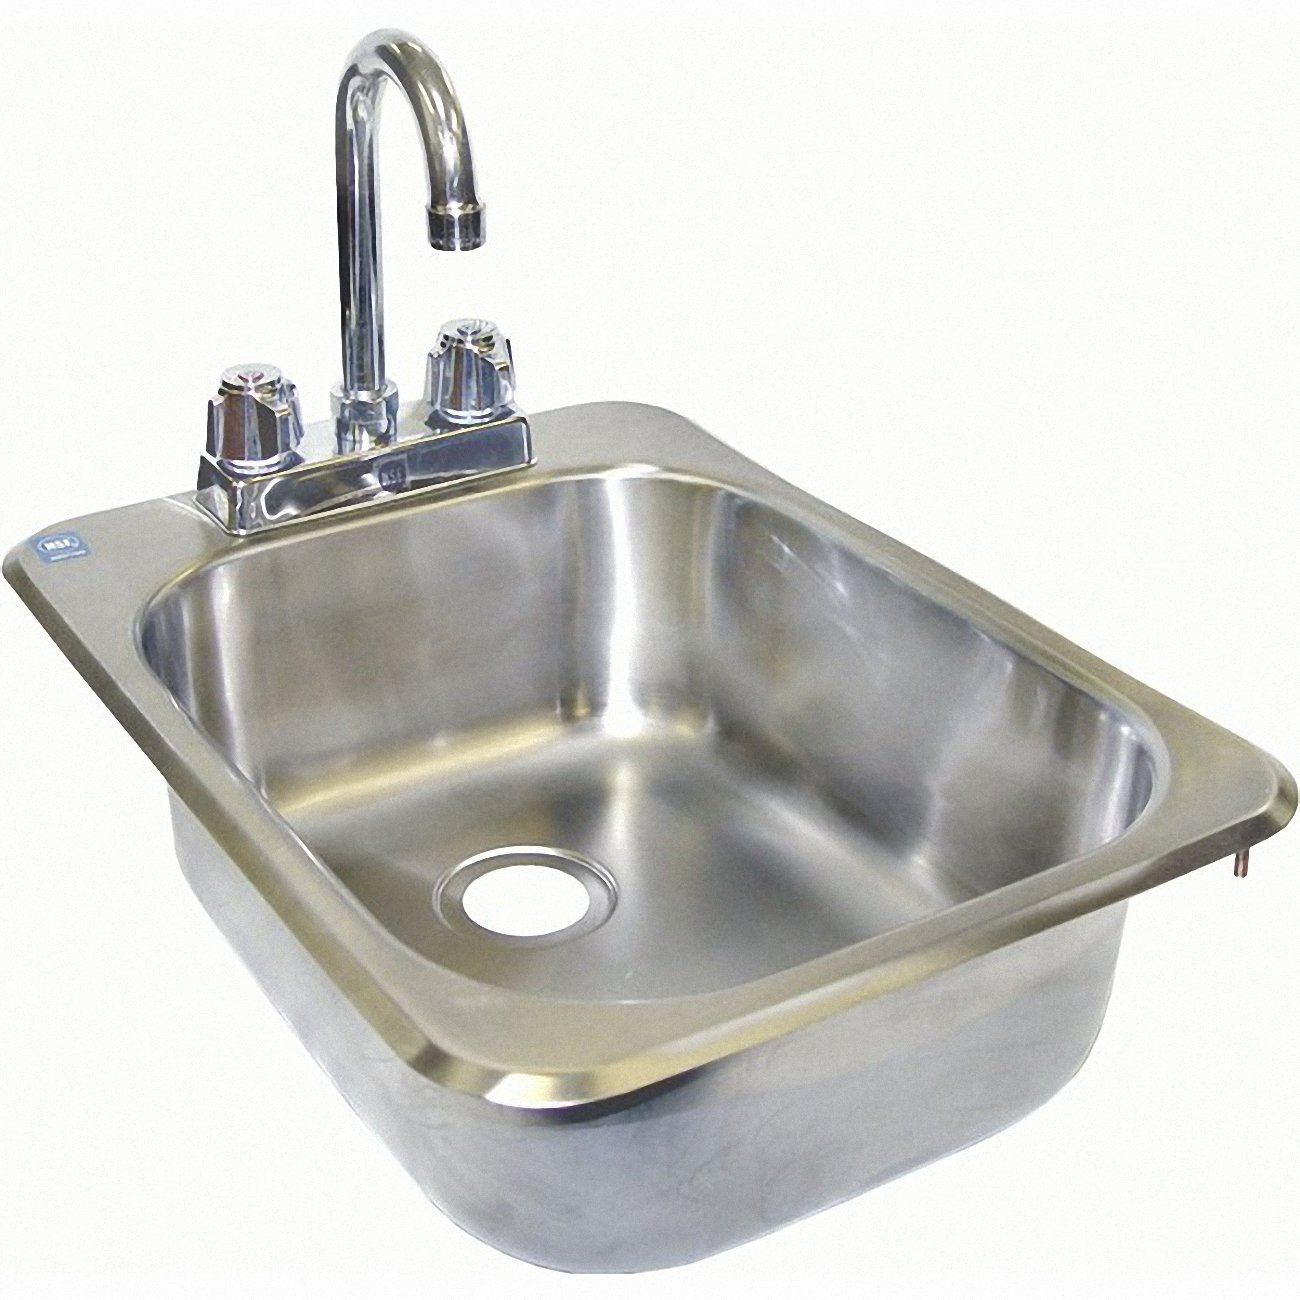 ACE Stainless Steel Drop in Hand Sink with No Lead Faucet and Strainer, 13 by 17-1/2-Inch